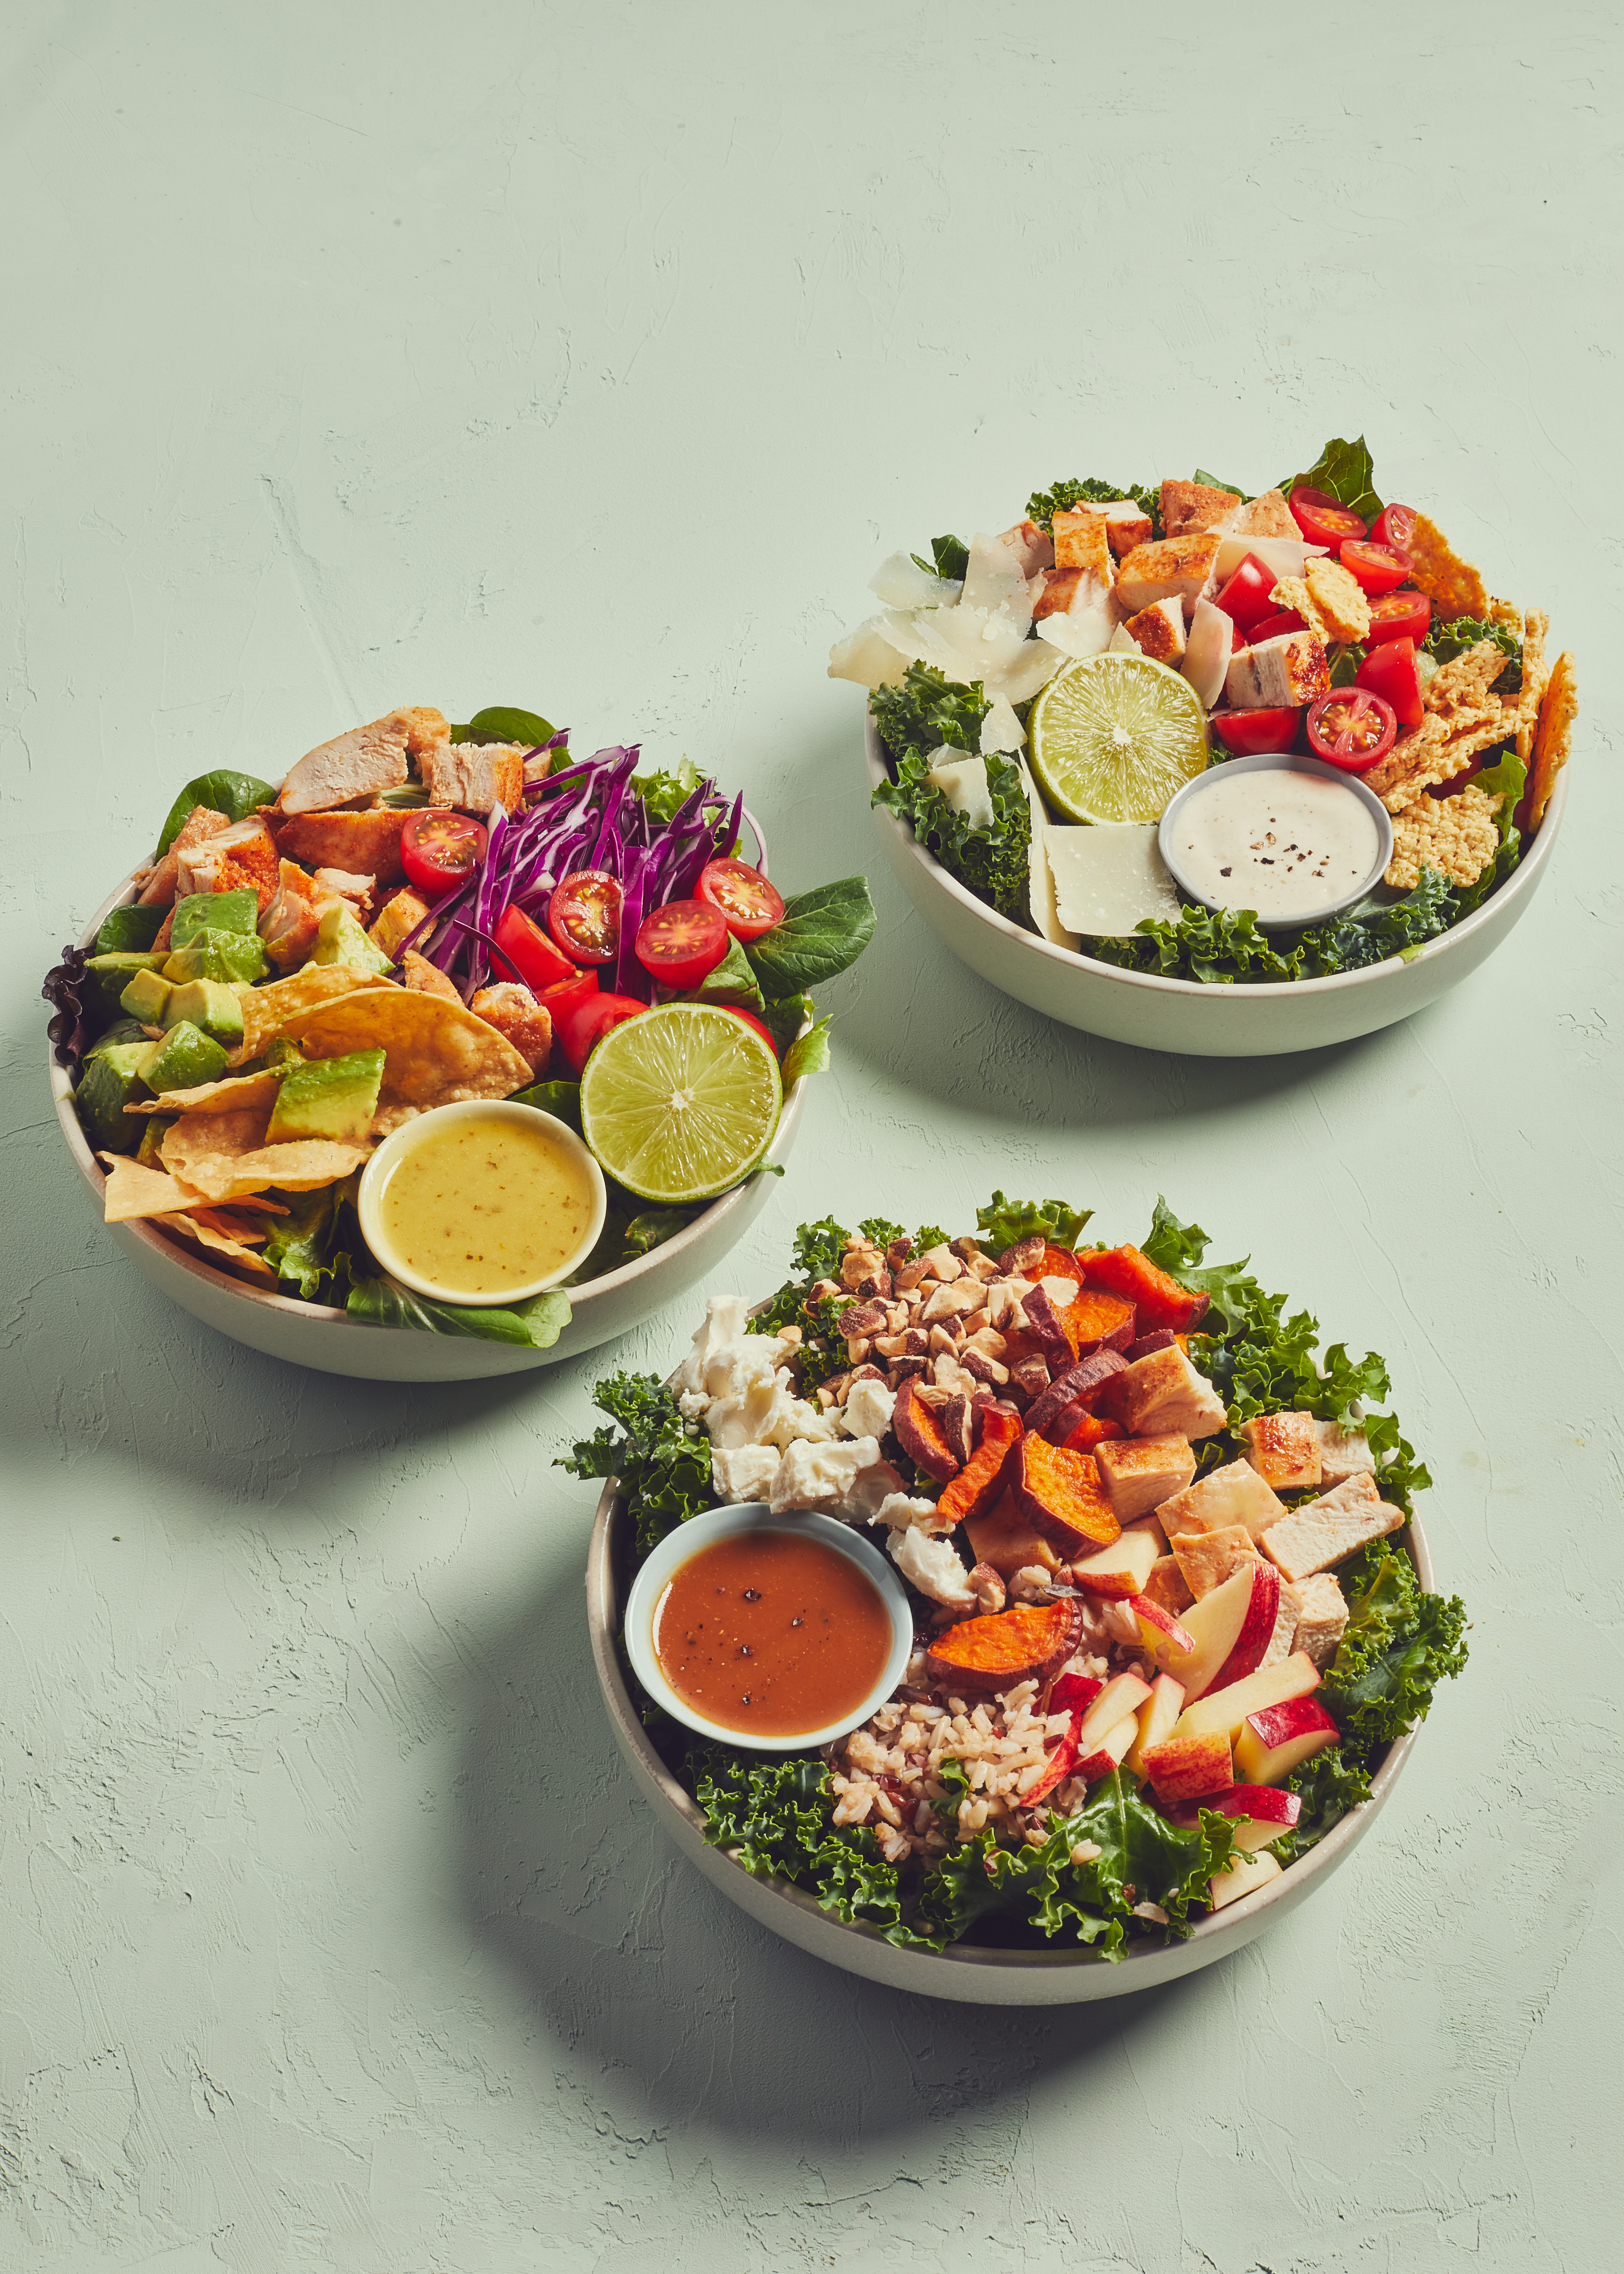 A trio of salads from Sweetgreen served in white bowls